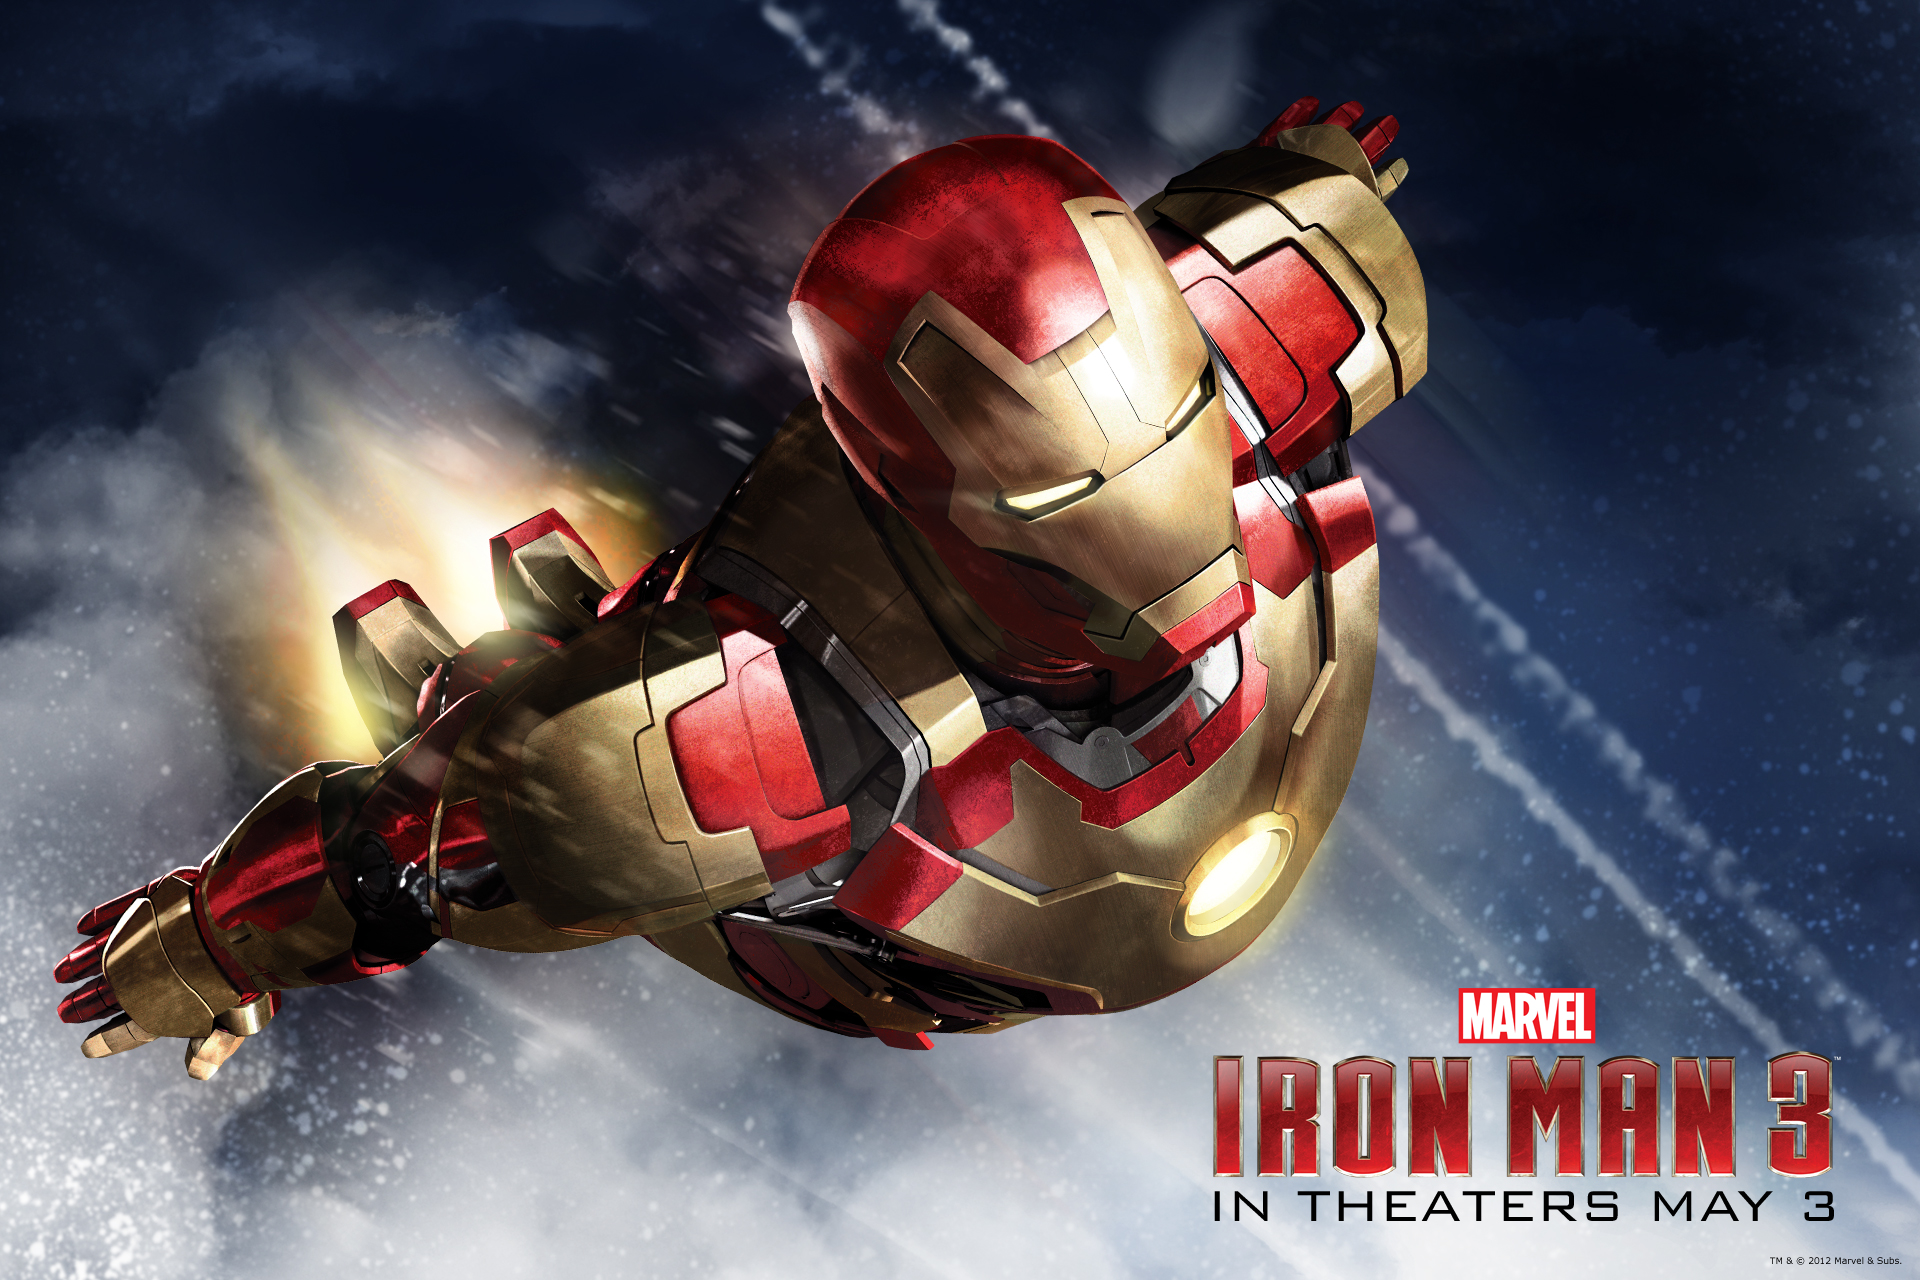 iron man 3 wallpaperreggie's take